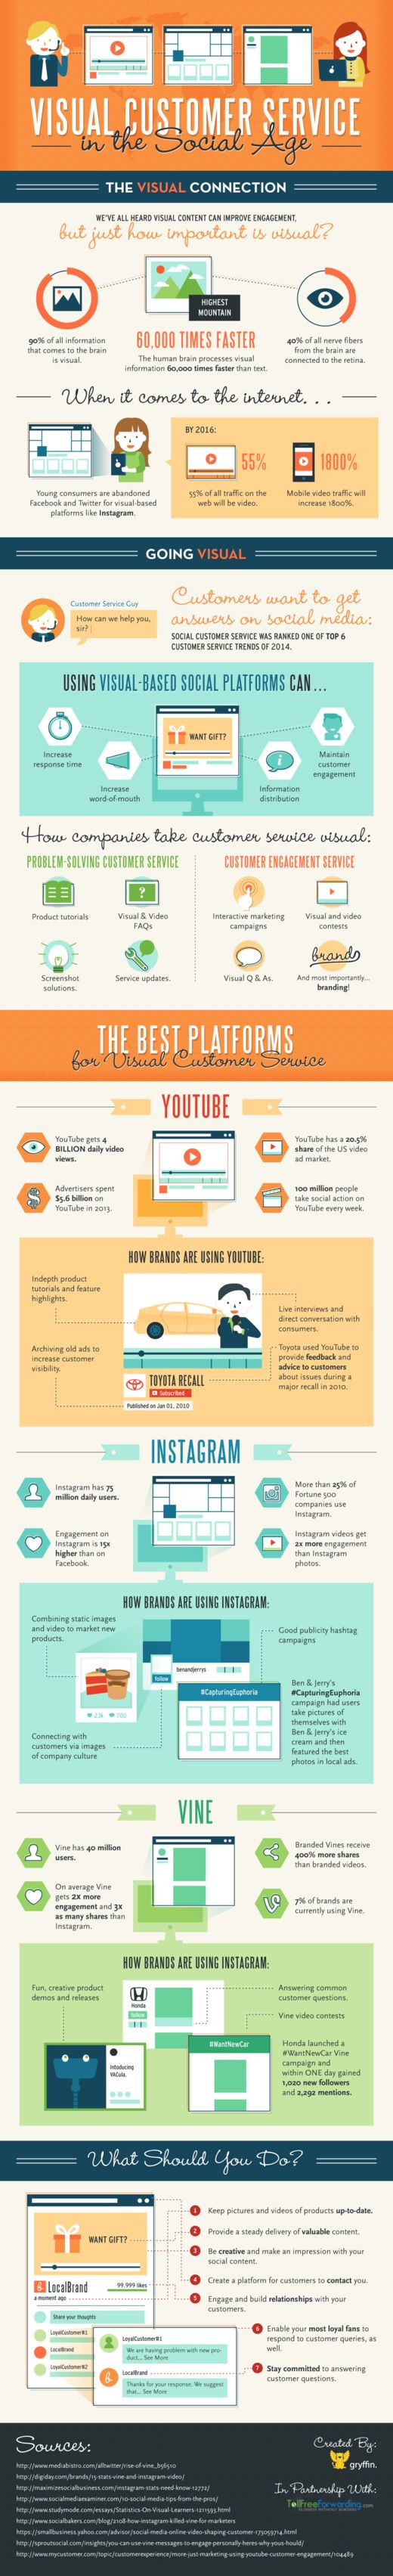 Why Visual Content Matters in the Social Age [INFOGRAPHIC]